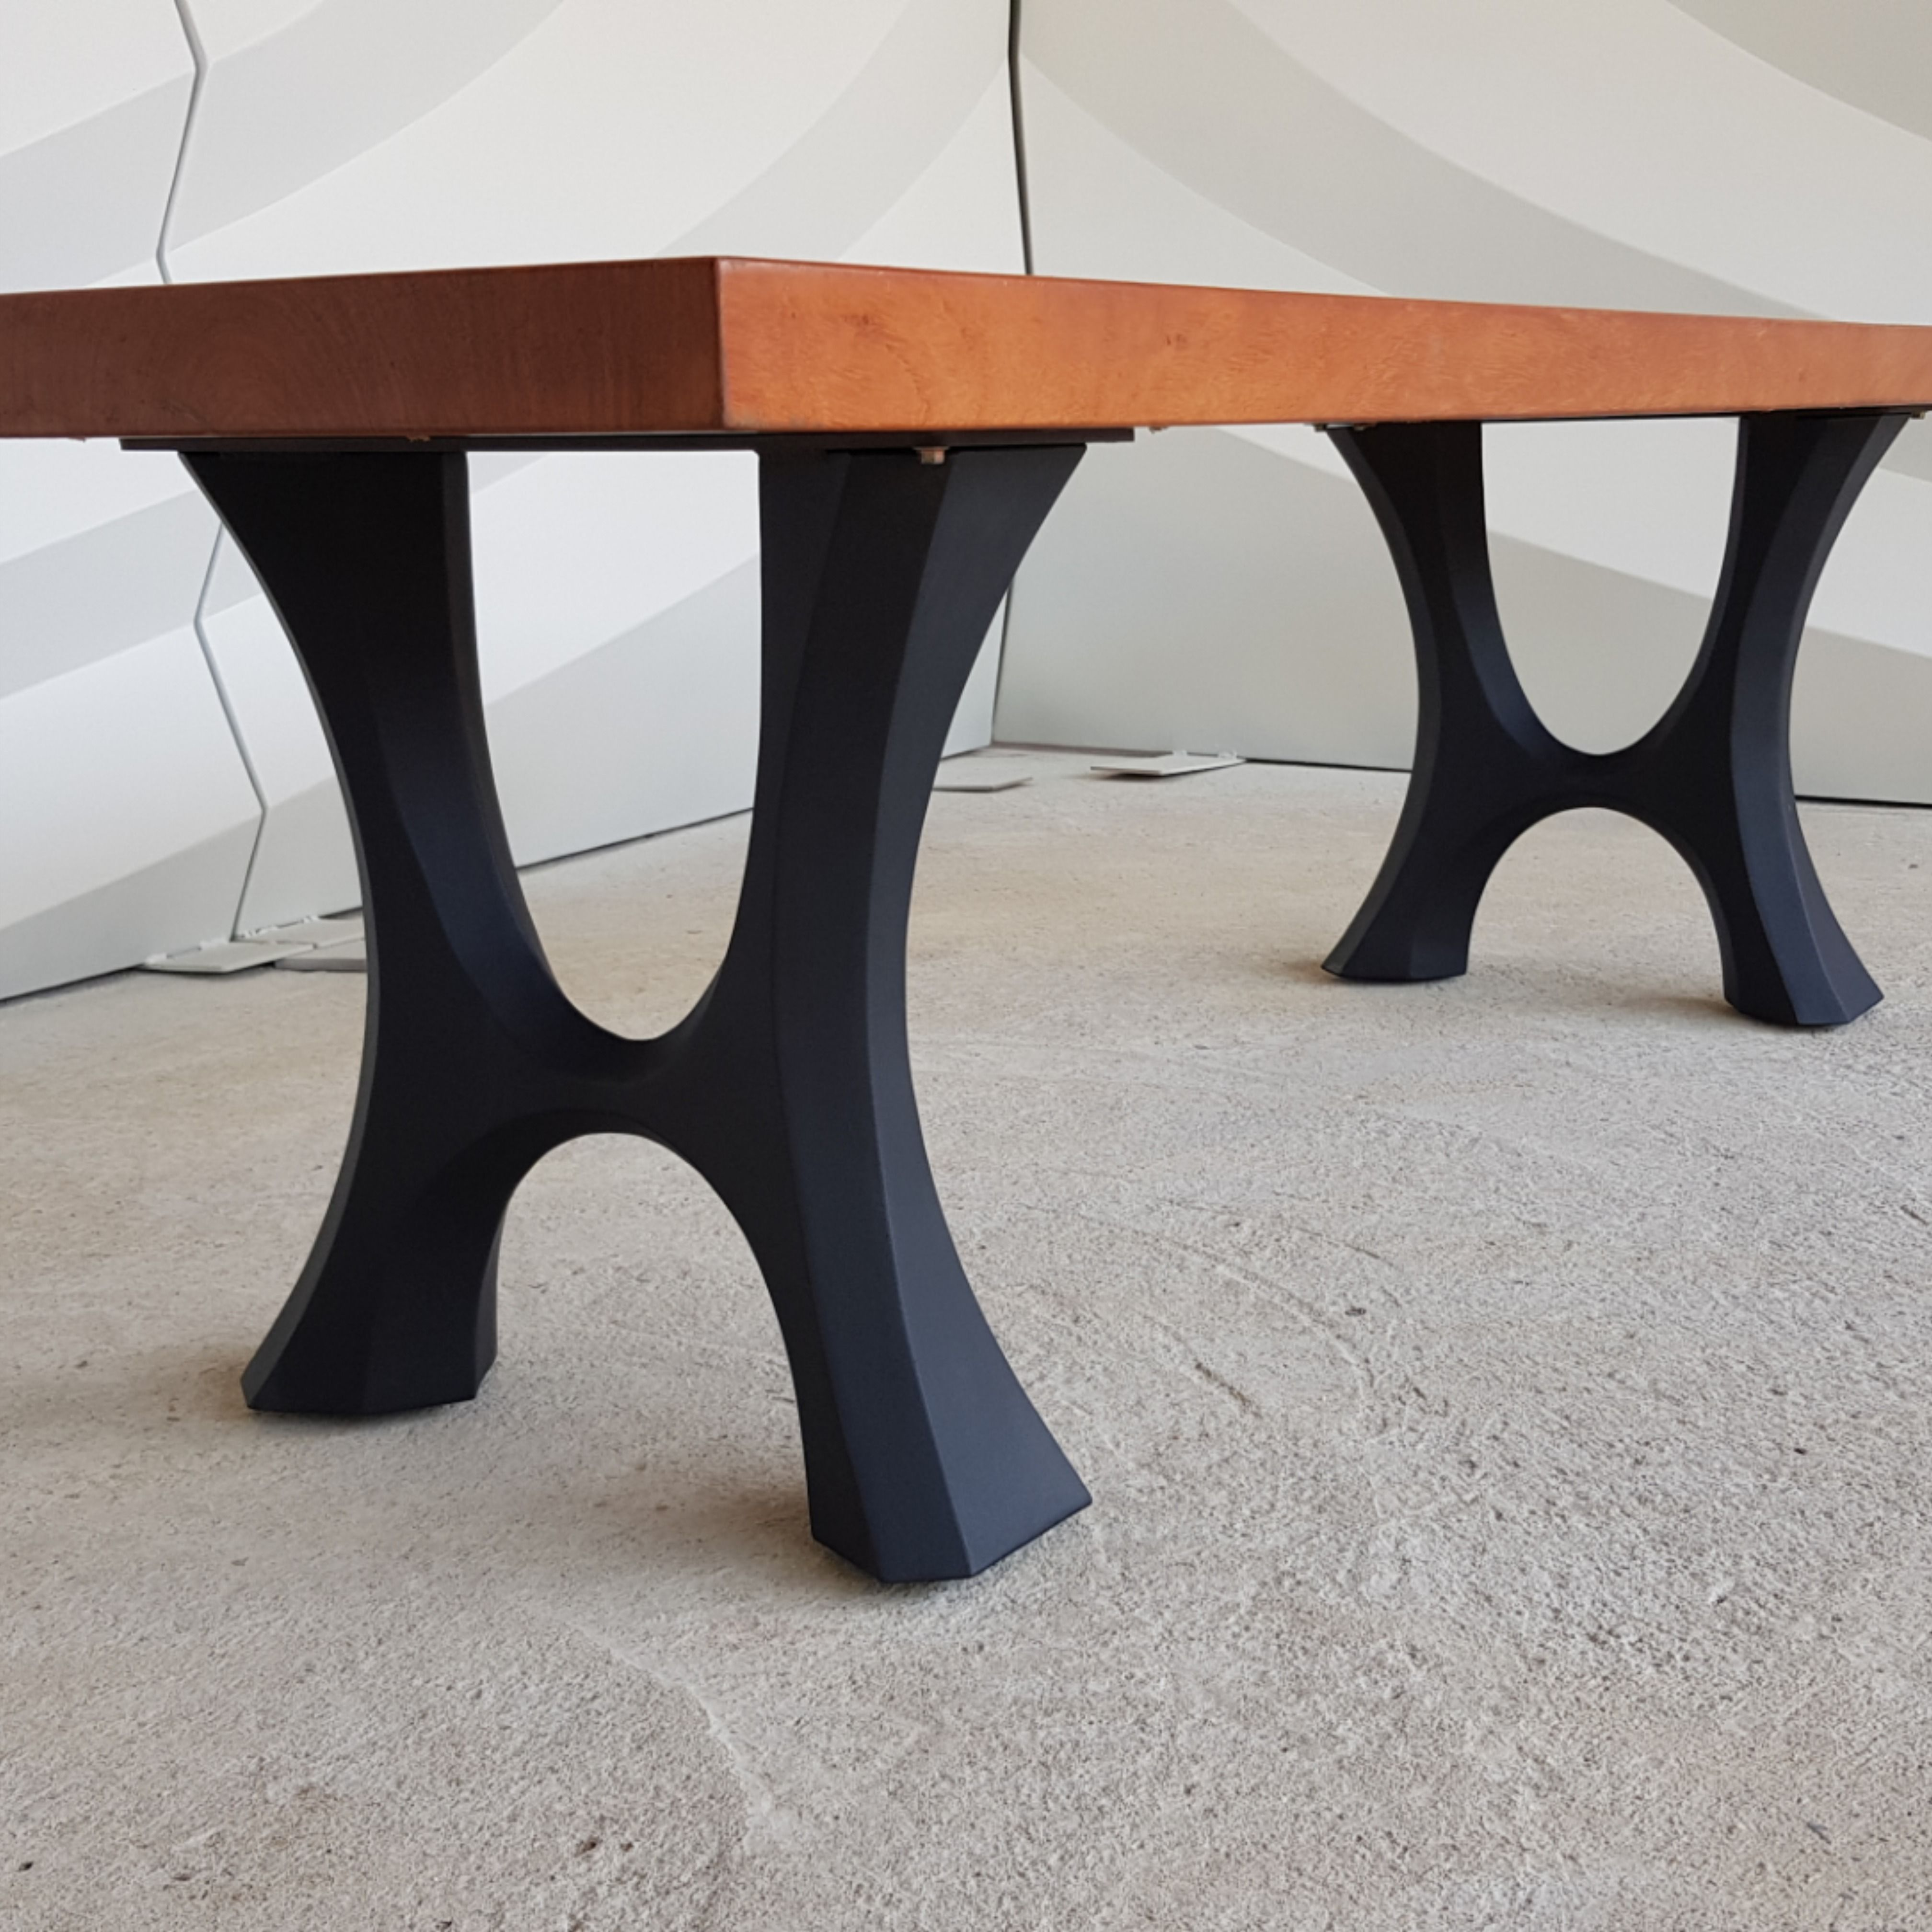 Metal Table Legs Furniture Base For Live Edge Top River Table Dining Table Epoxy Resin Table Metal Table Legs Dining Table Metal Table Base [ 4032 x 4032 Pixel ]